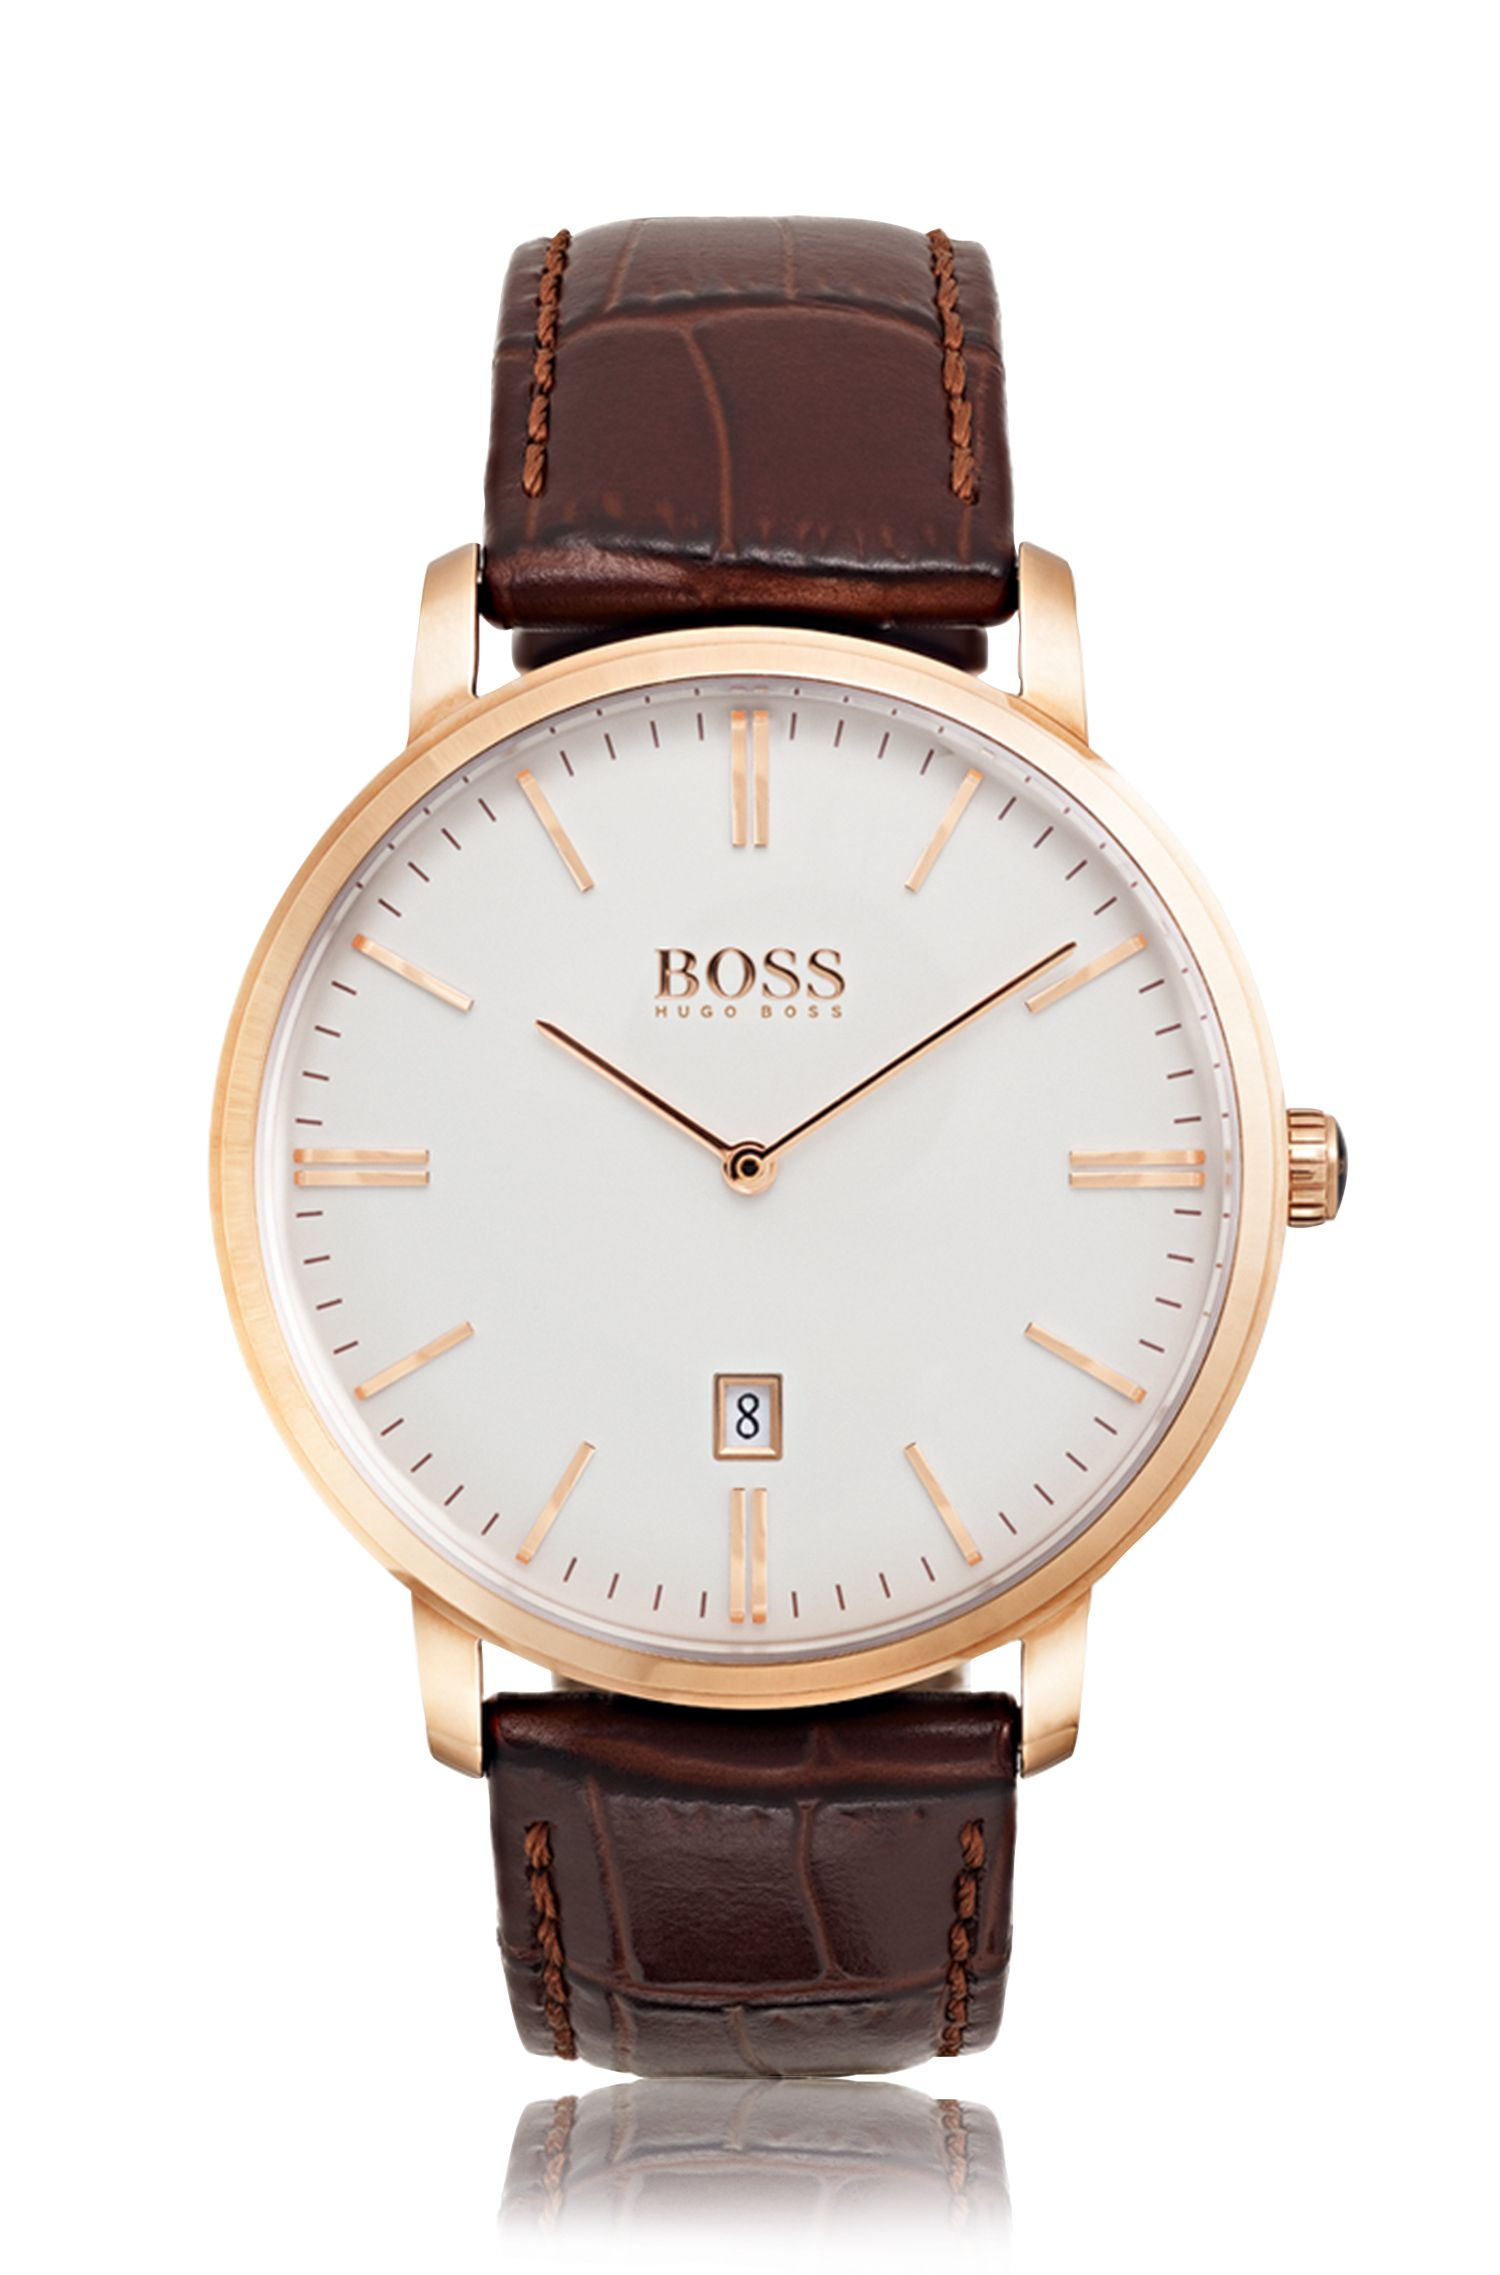 Rose-gold-plated two-hand watch with leather strap